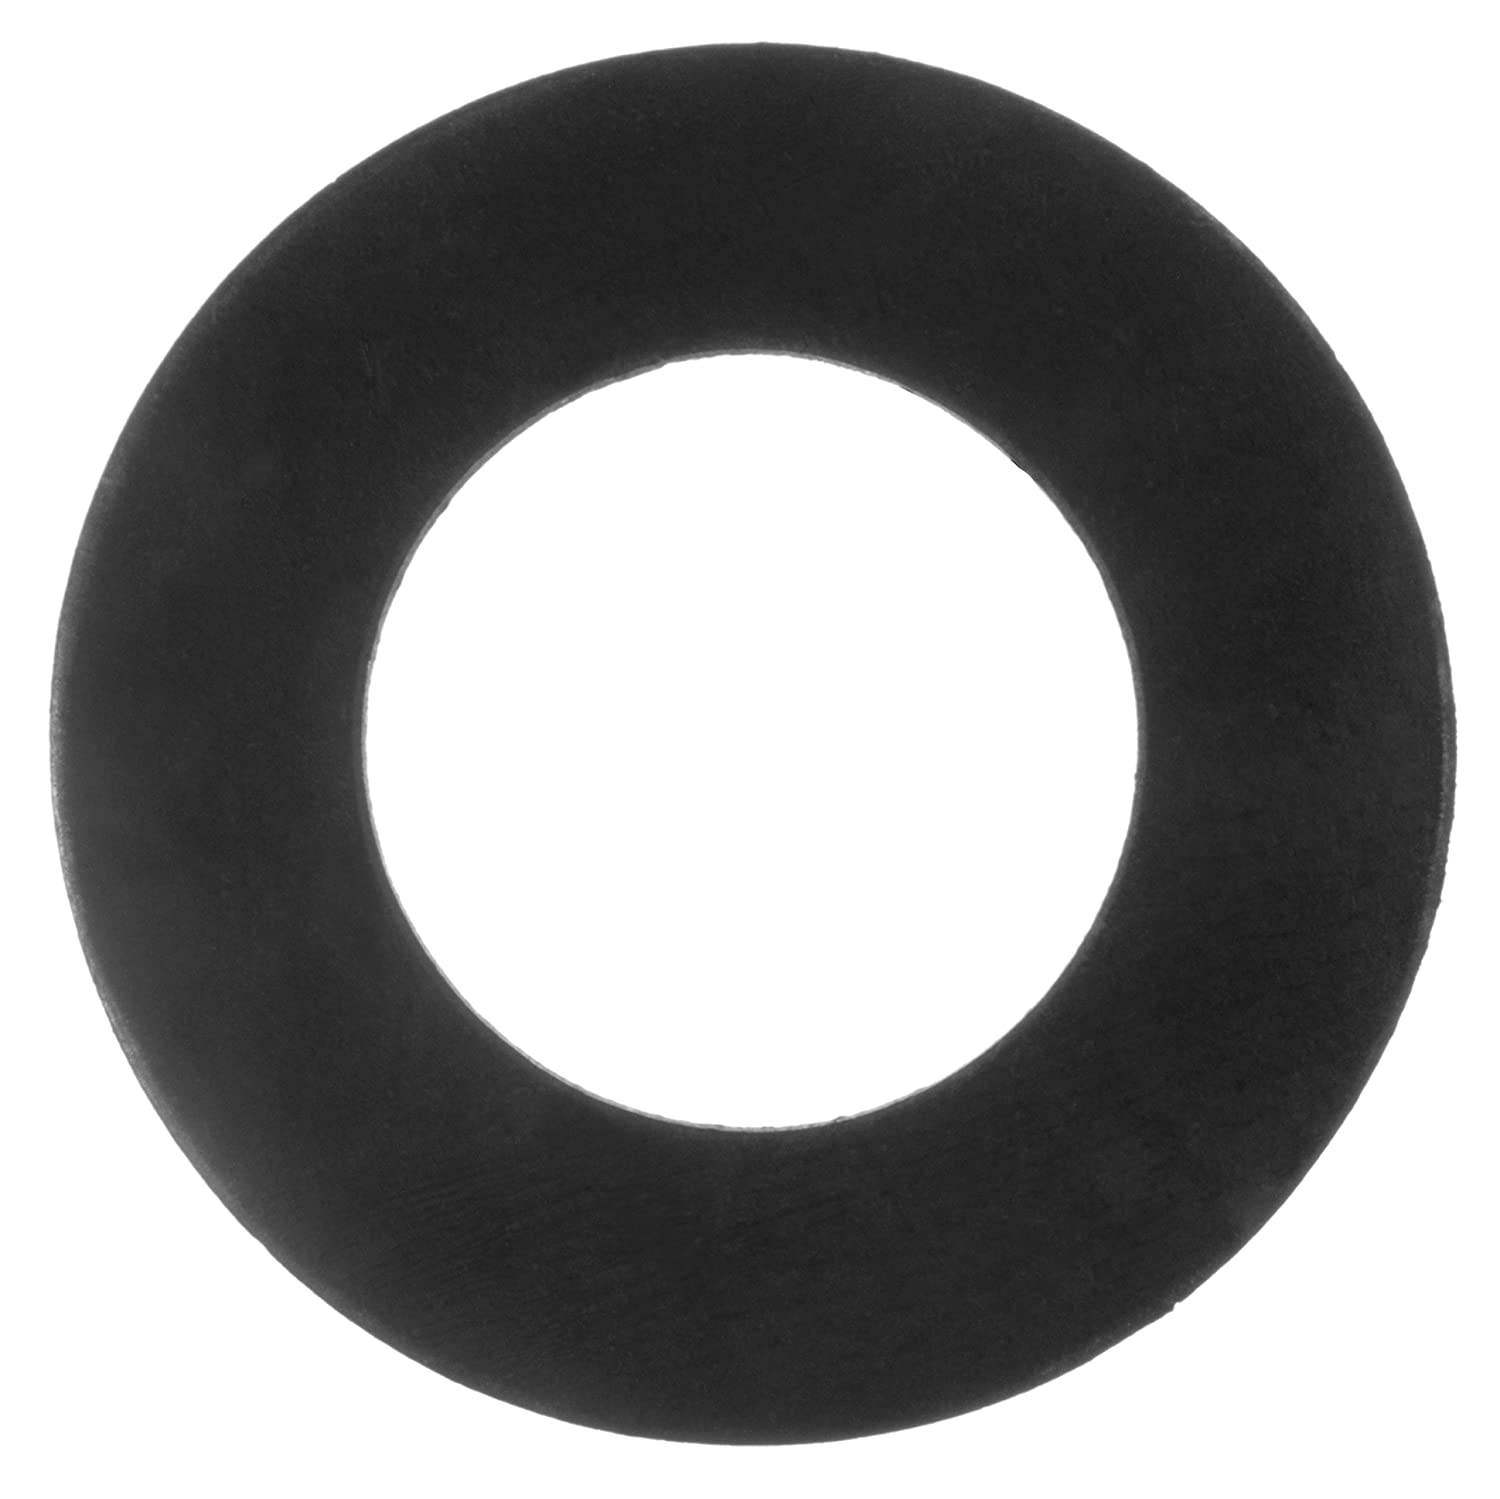 USA Sealing Ring Viton Rubber Flange Gasket for 1 Pipe Class 300 1//16 Thick